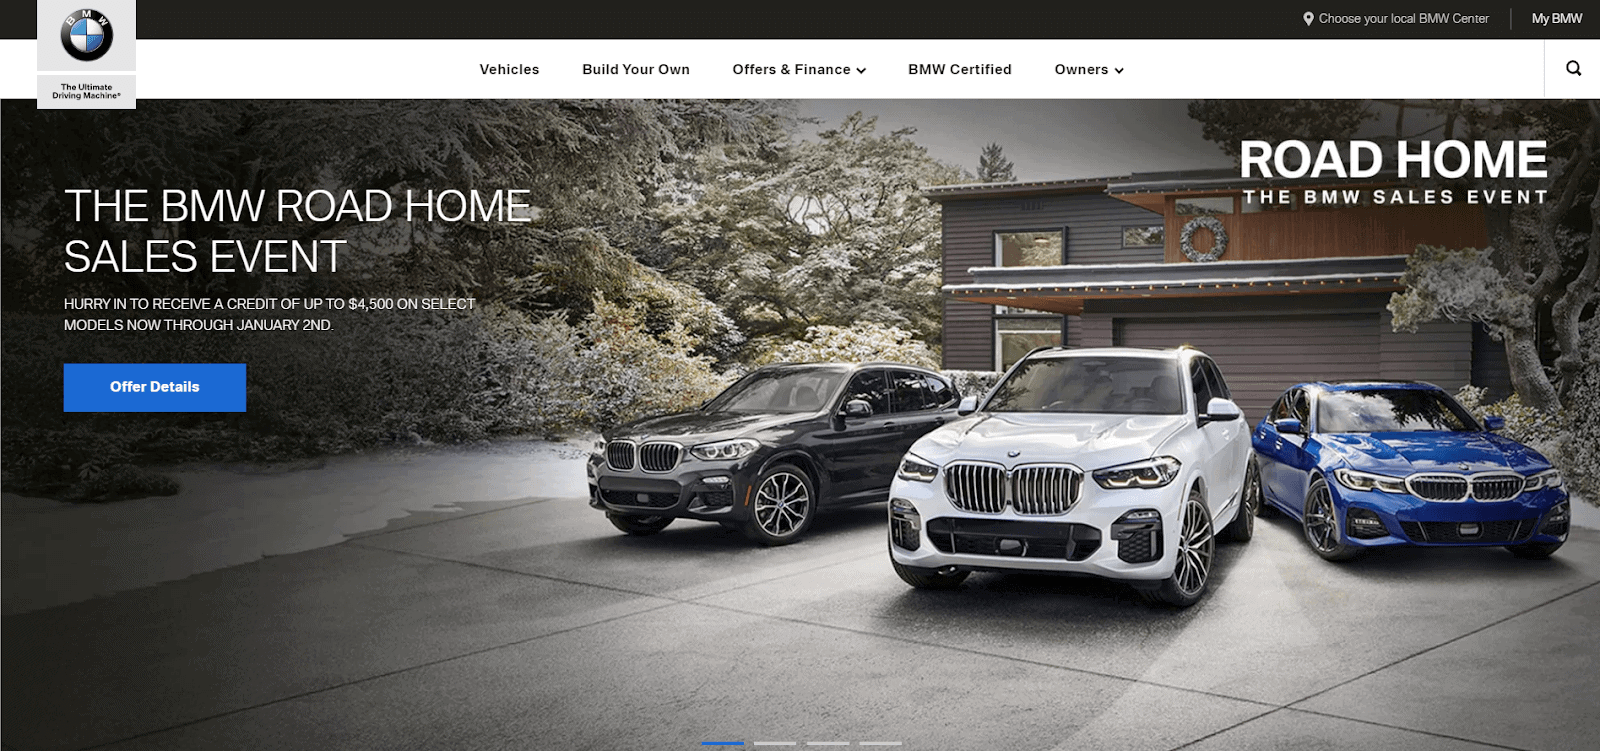 BMW homepage screenshot